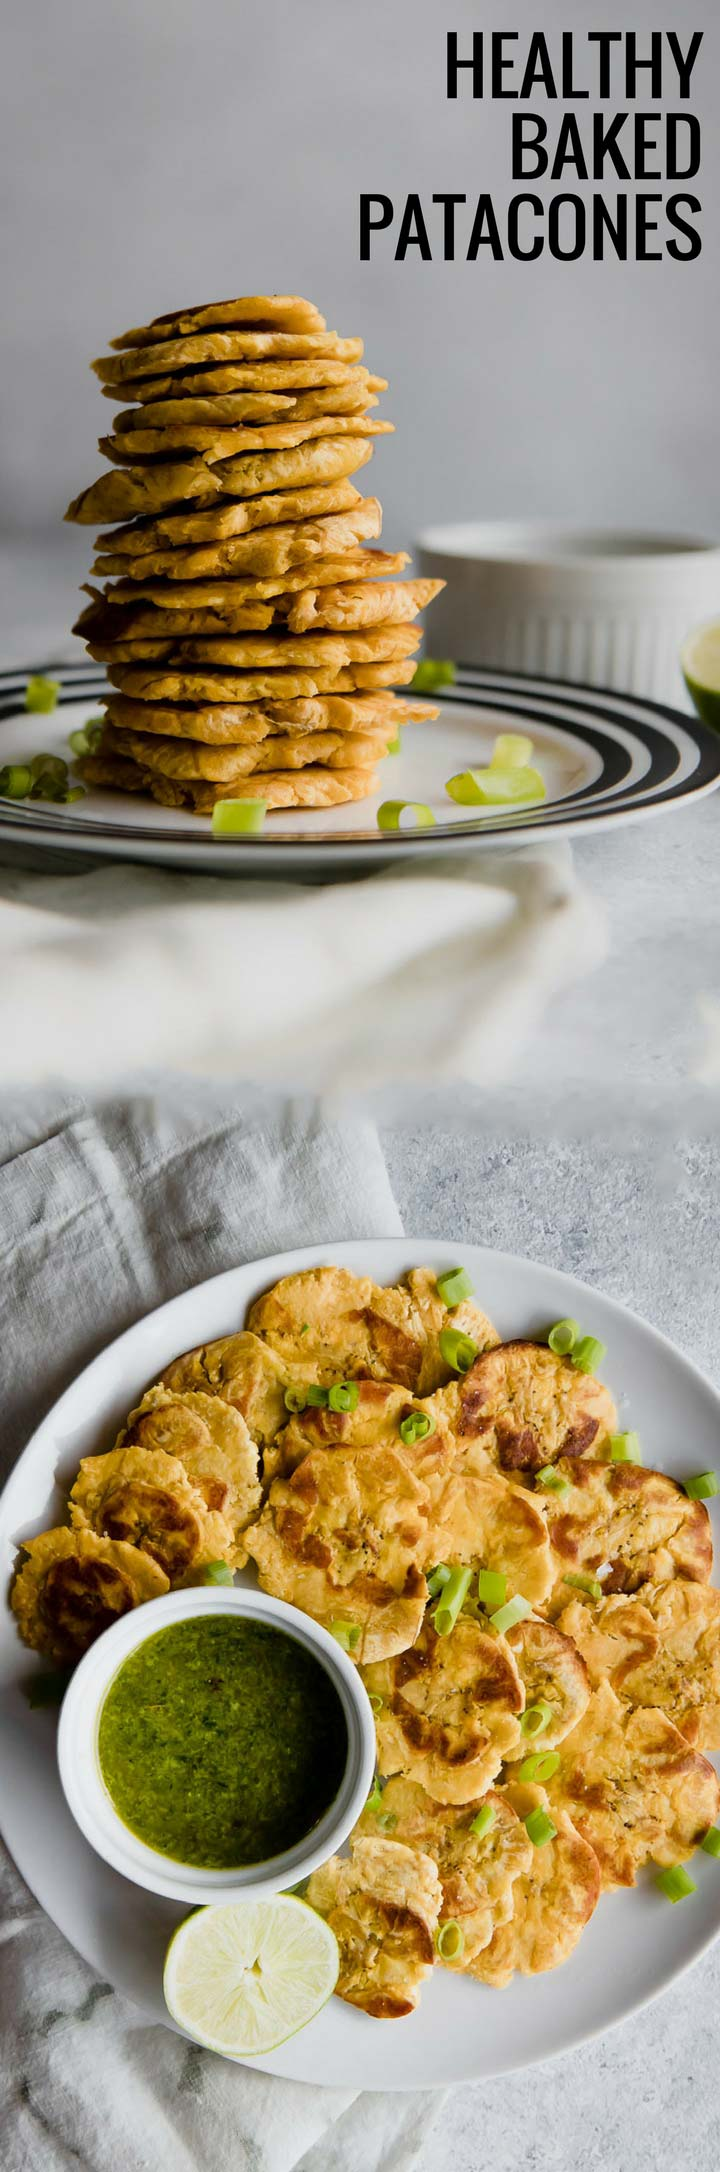 Healthy Baked Patacones with Mojo Sauce, a healthy take on the classic fried Colombian patacones (or sometimes called tostones). Smashed plantains baked and served with spicy mojo herb sauce. Delicioso!